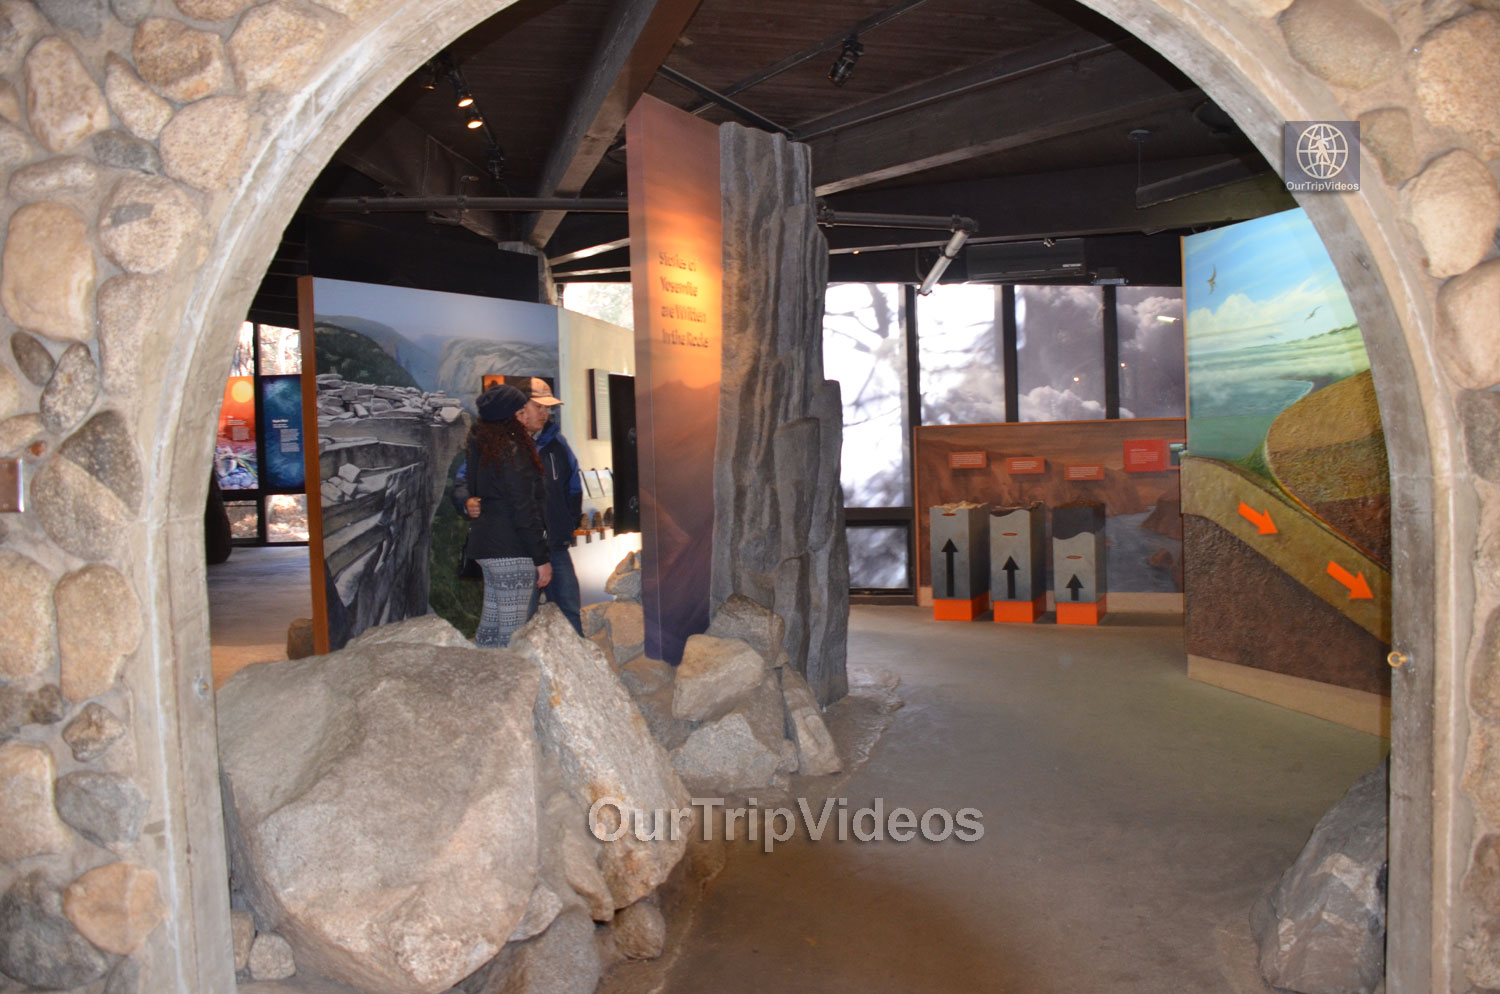 Yosemite National Park - Valley Visitor Center, Yosemite Valley, CA, USA - Picture 16 of 25